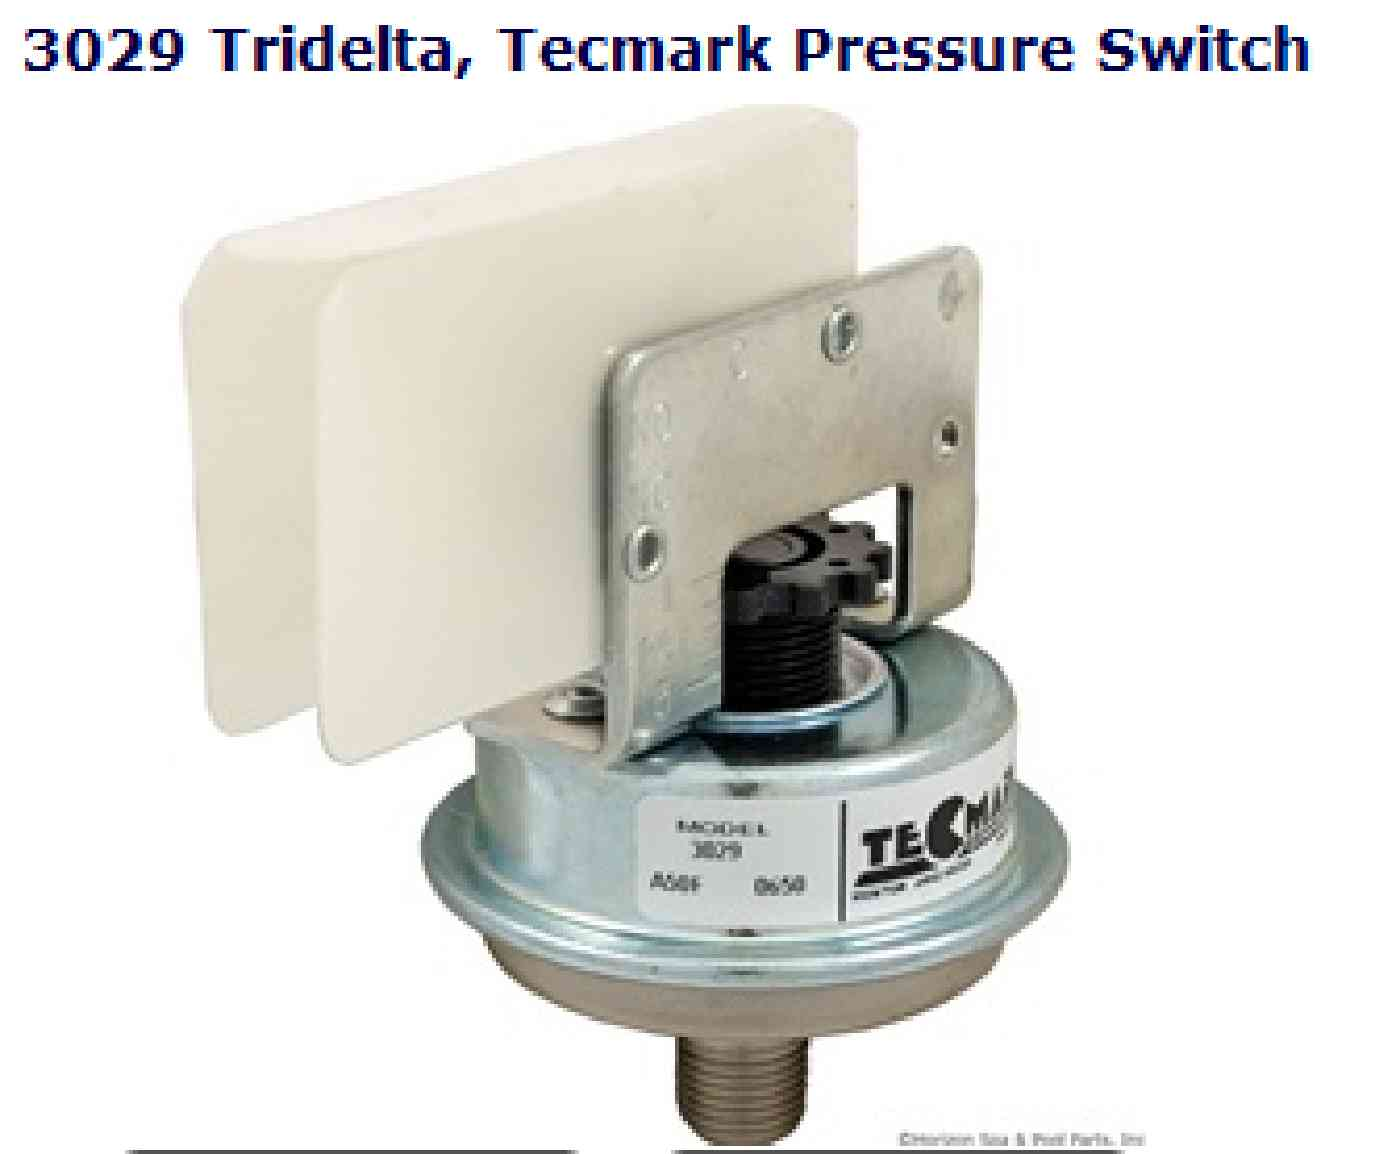 2012 05 08_224434_pressure_switch_2 i have a yr 2000 caldera spa which fails with a 'flo', permanently